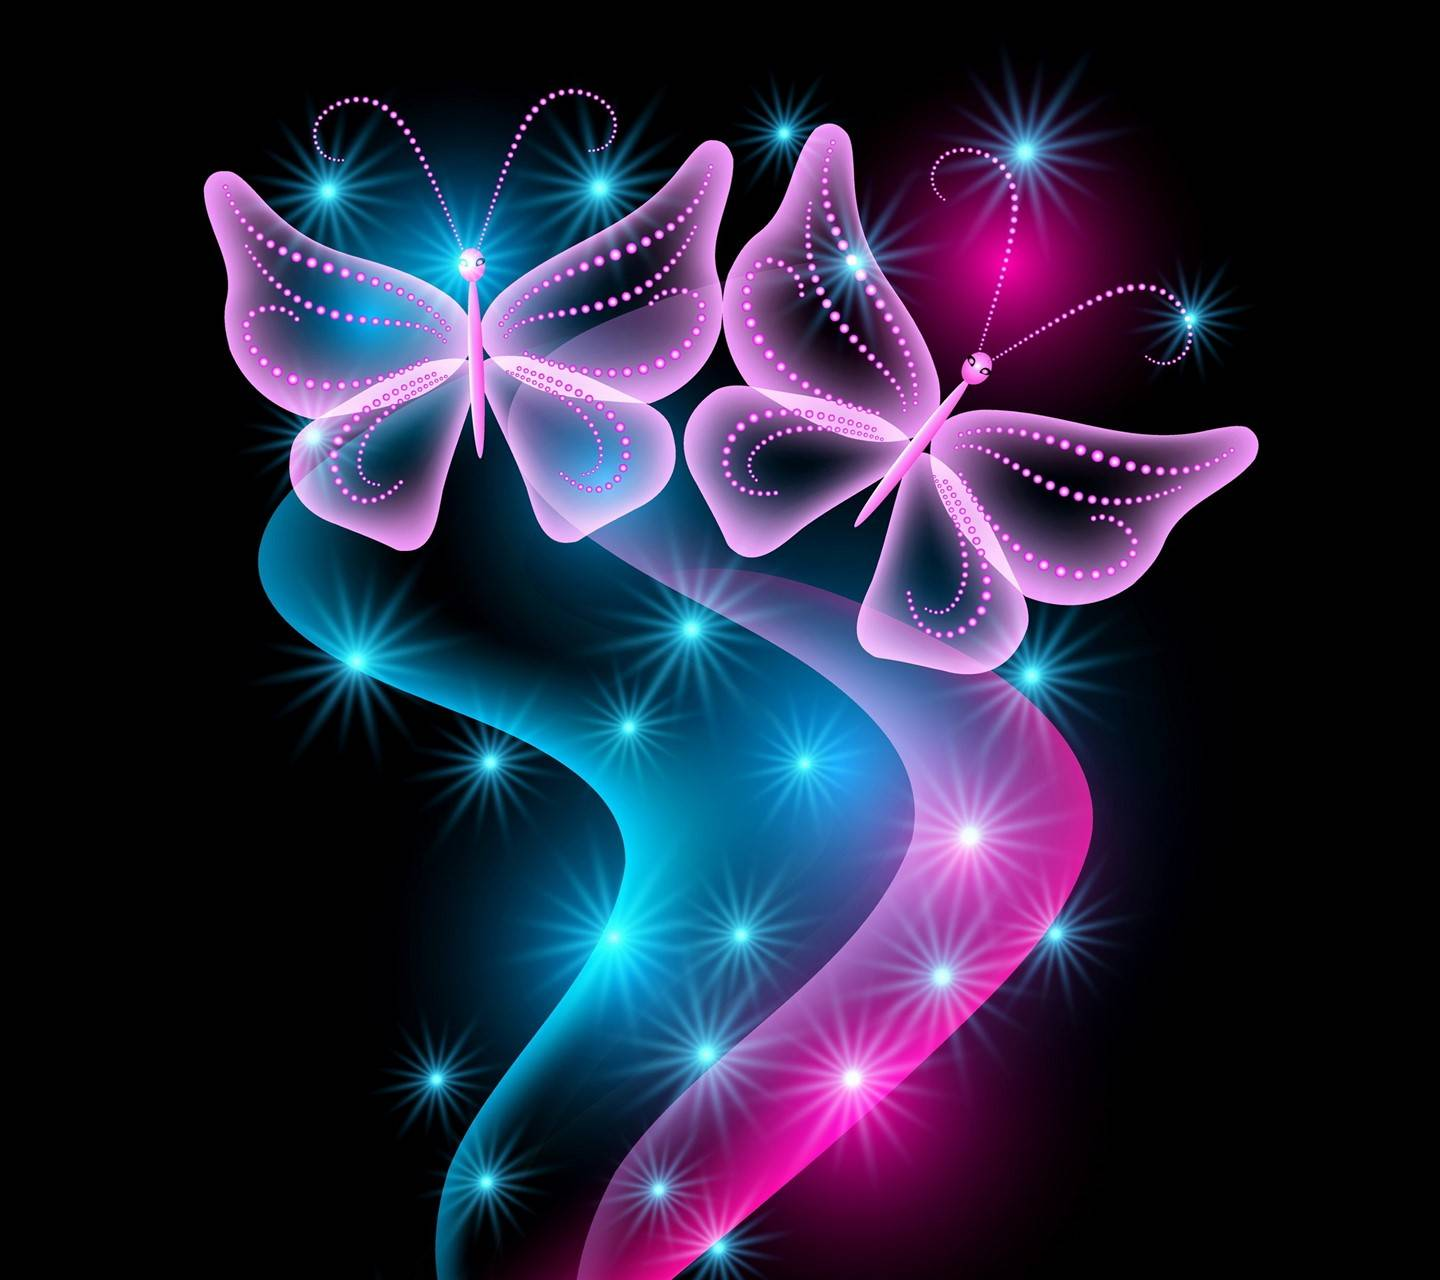 Neonlight Butterflie